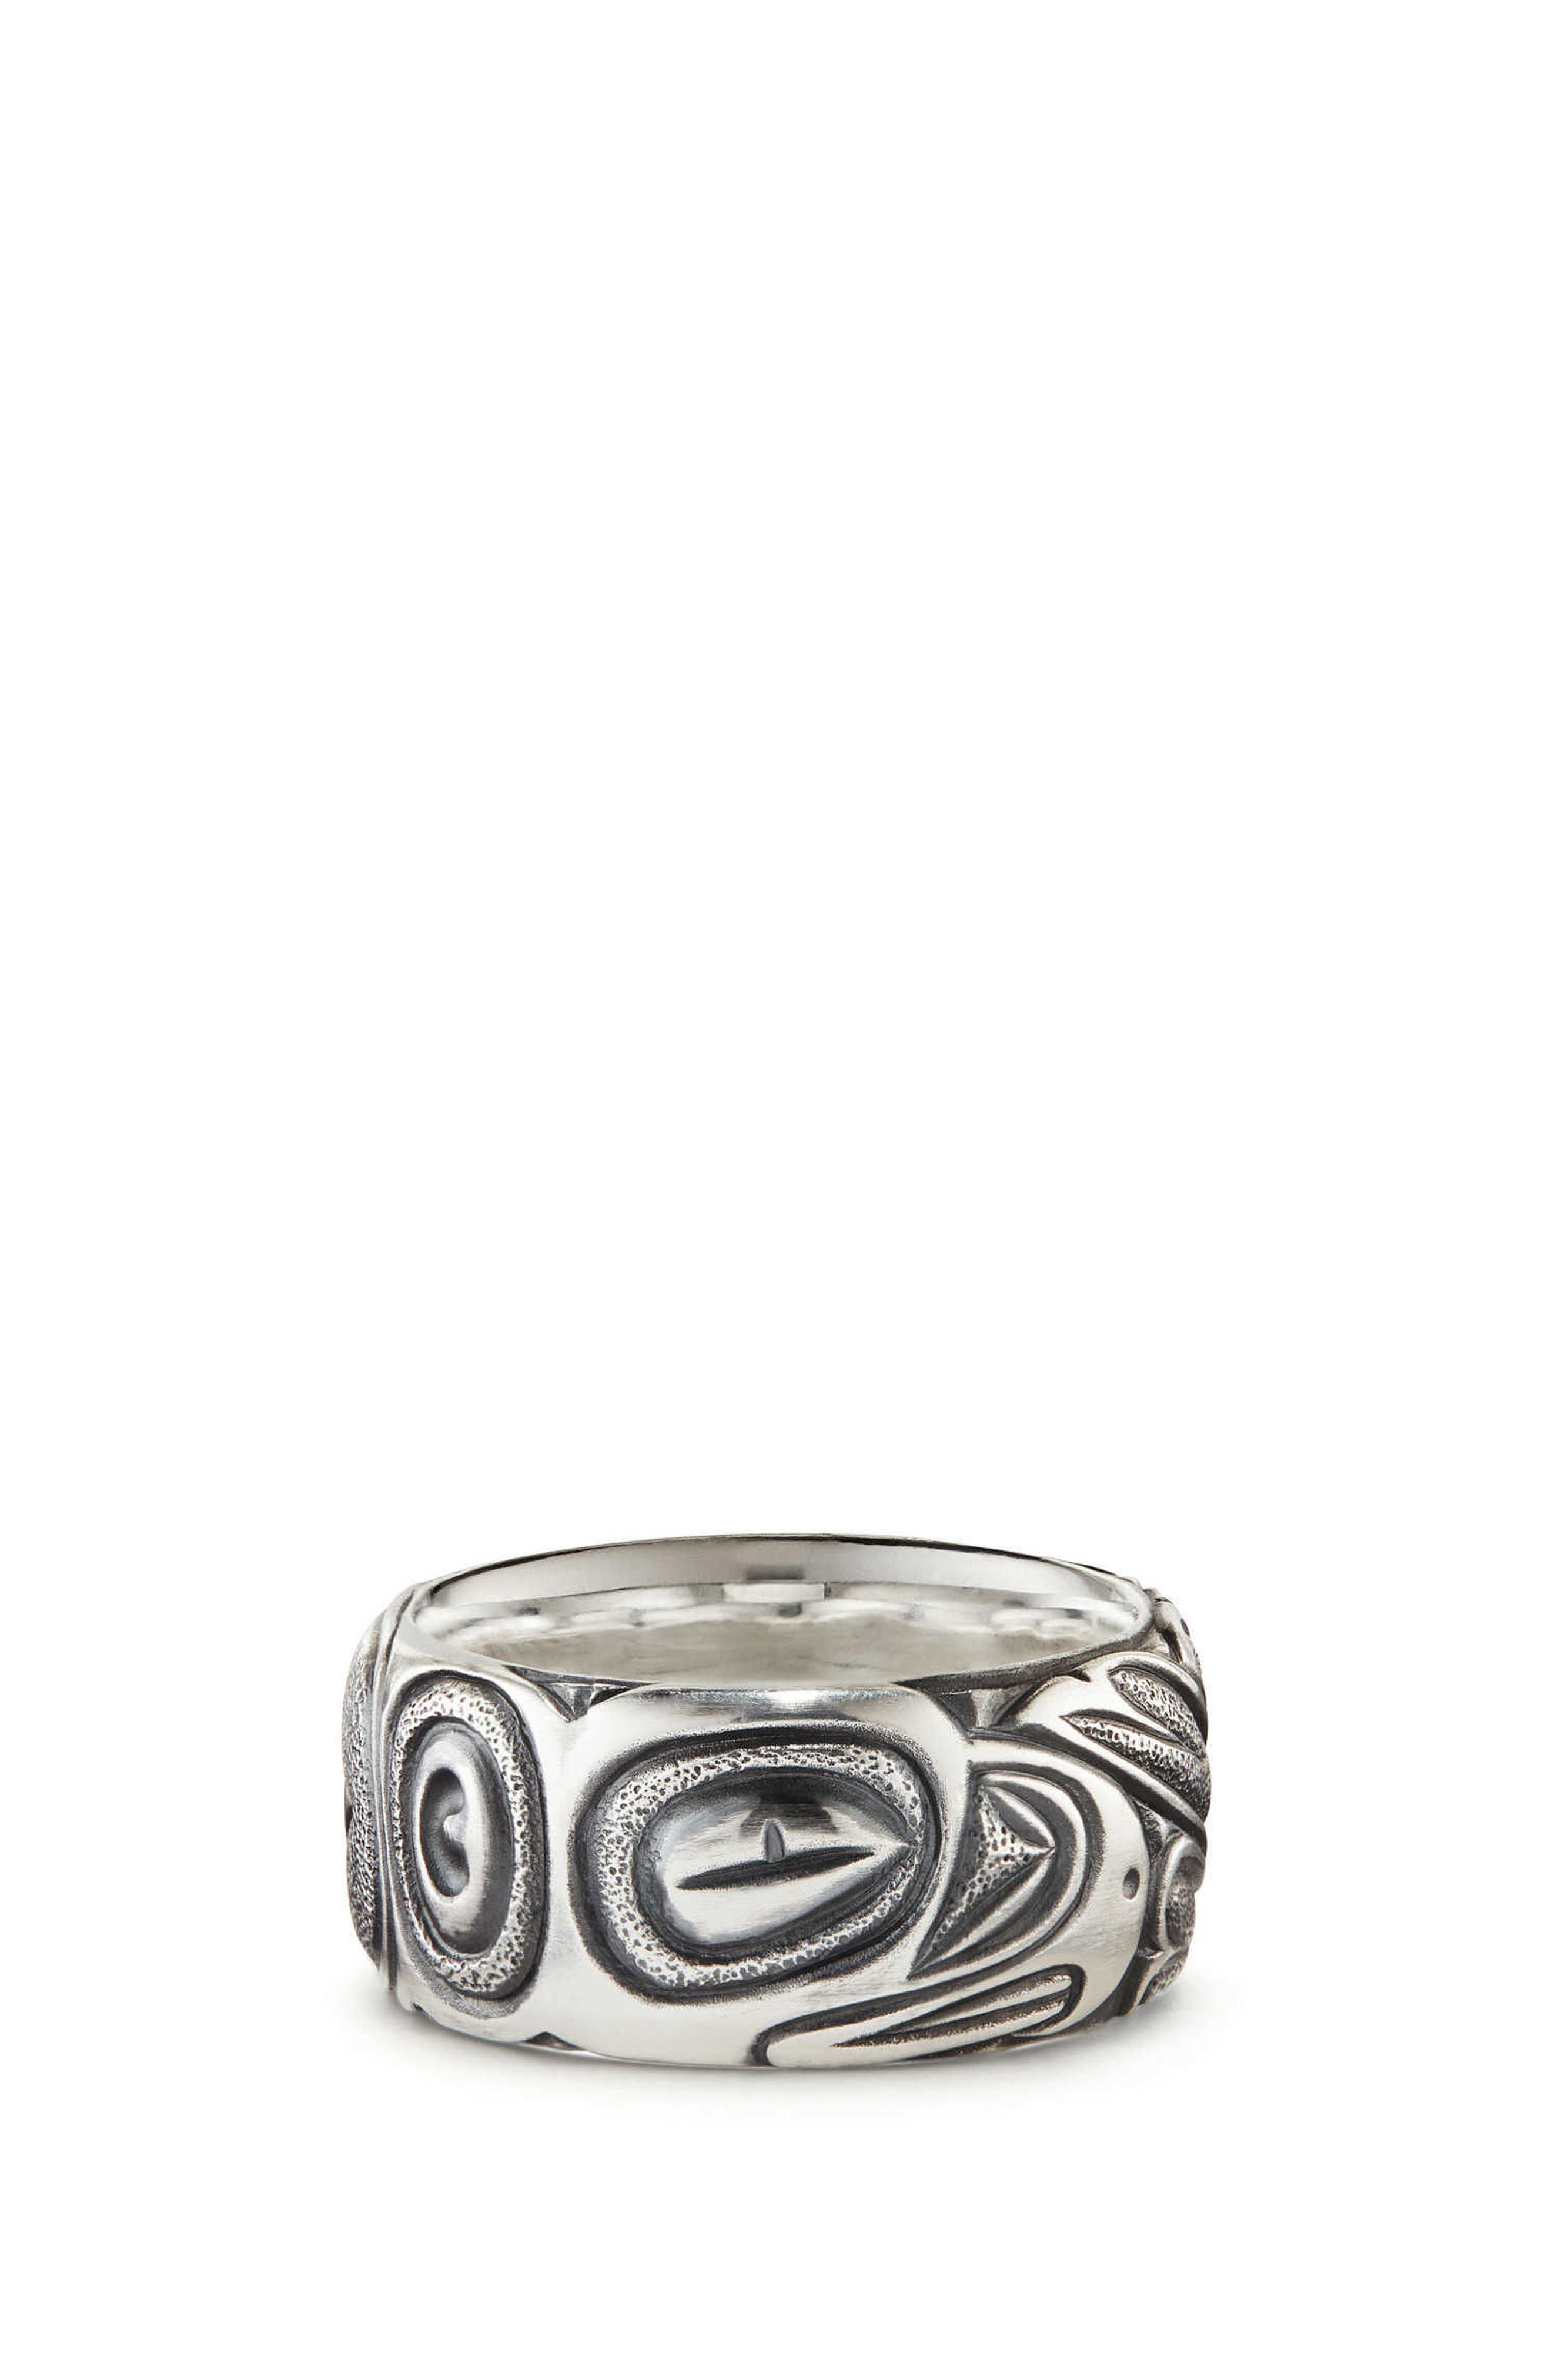 Northwest Wide Band Ring,                             Main thumbnail 1, color,                             SILVER